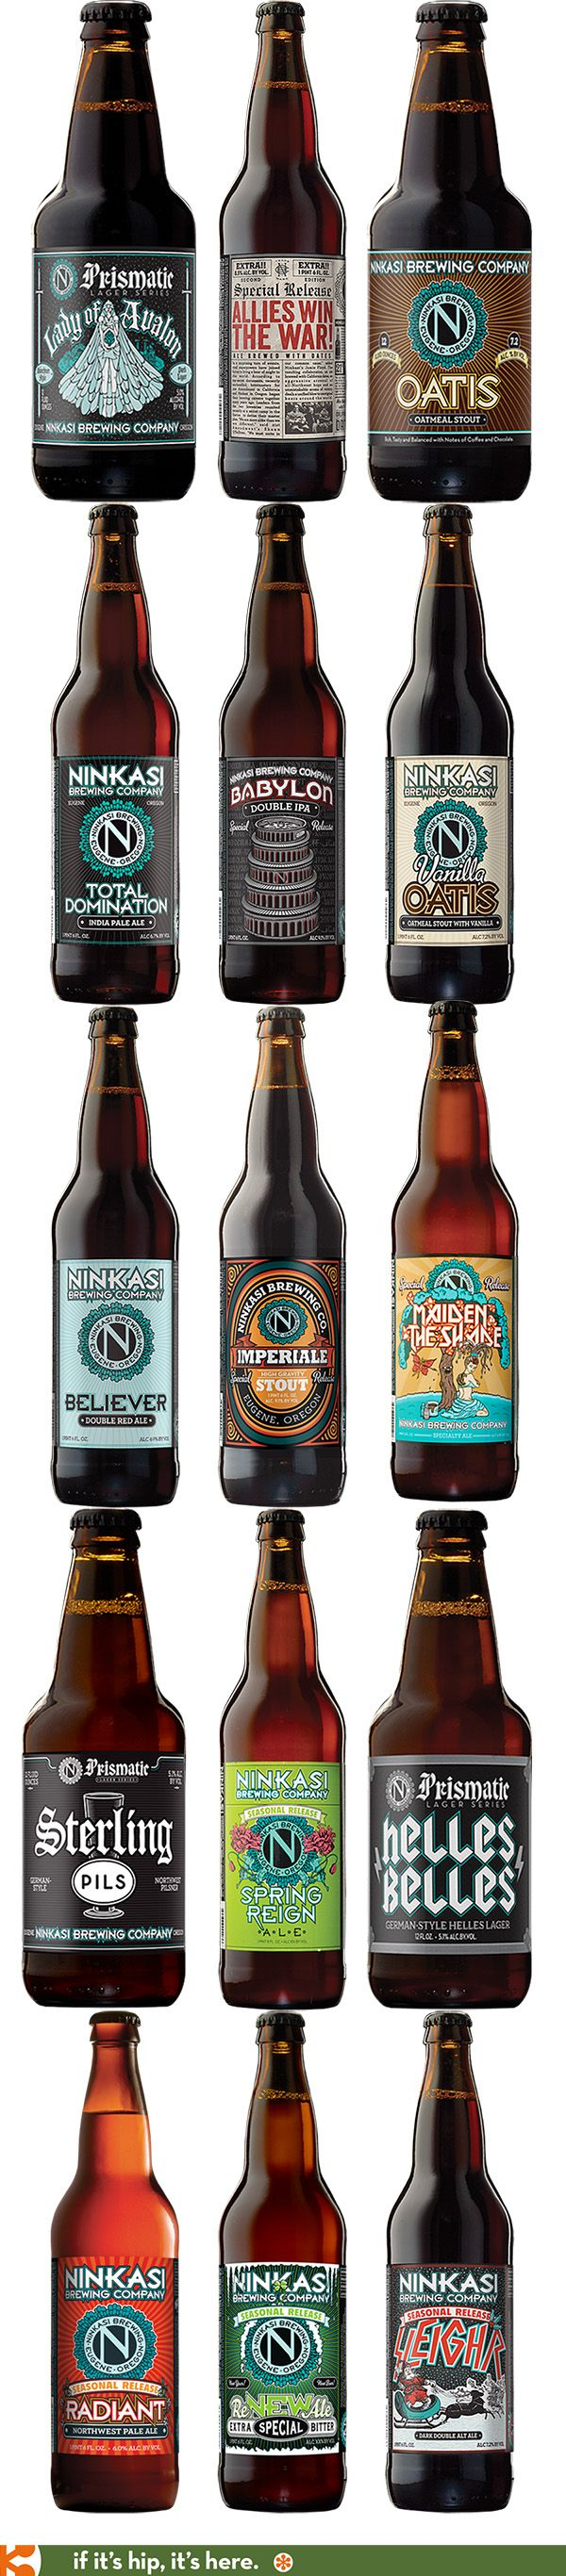 The pretty beer labels from Eugene Oregon's Ninkasi brewing Co.